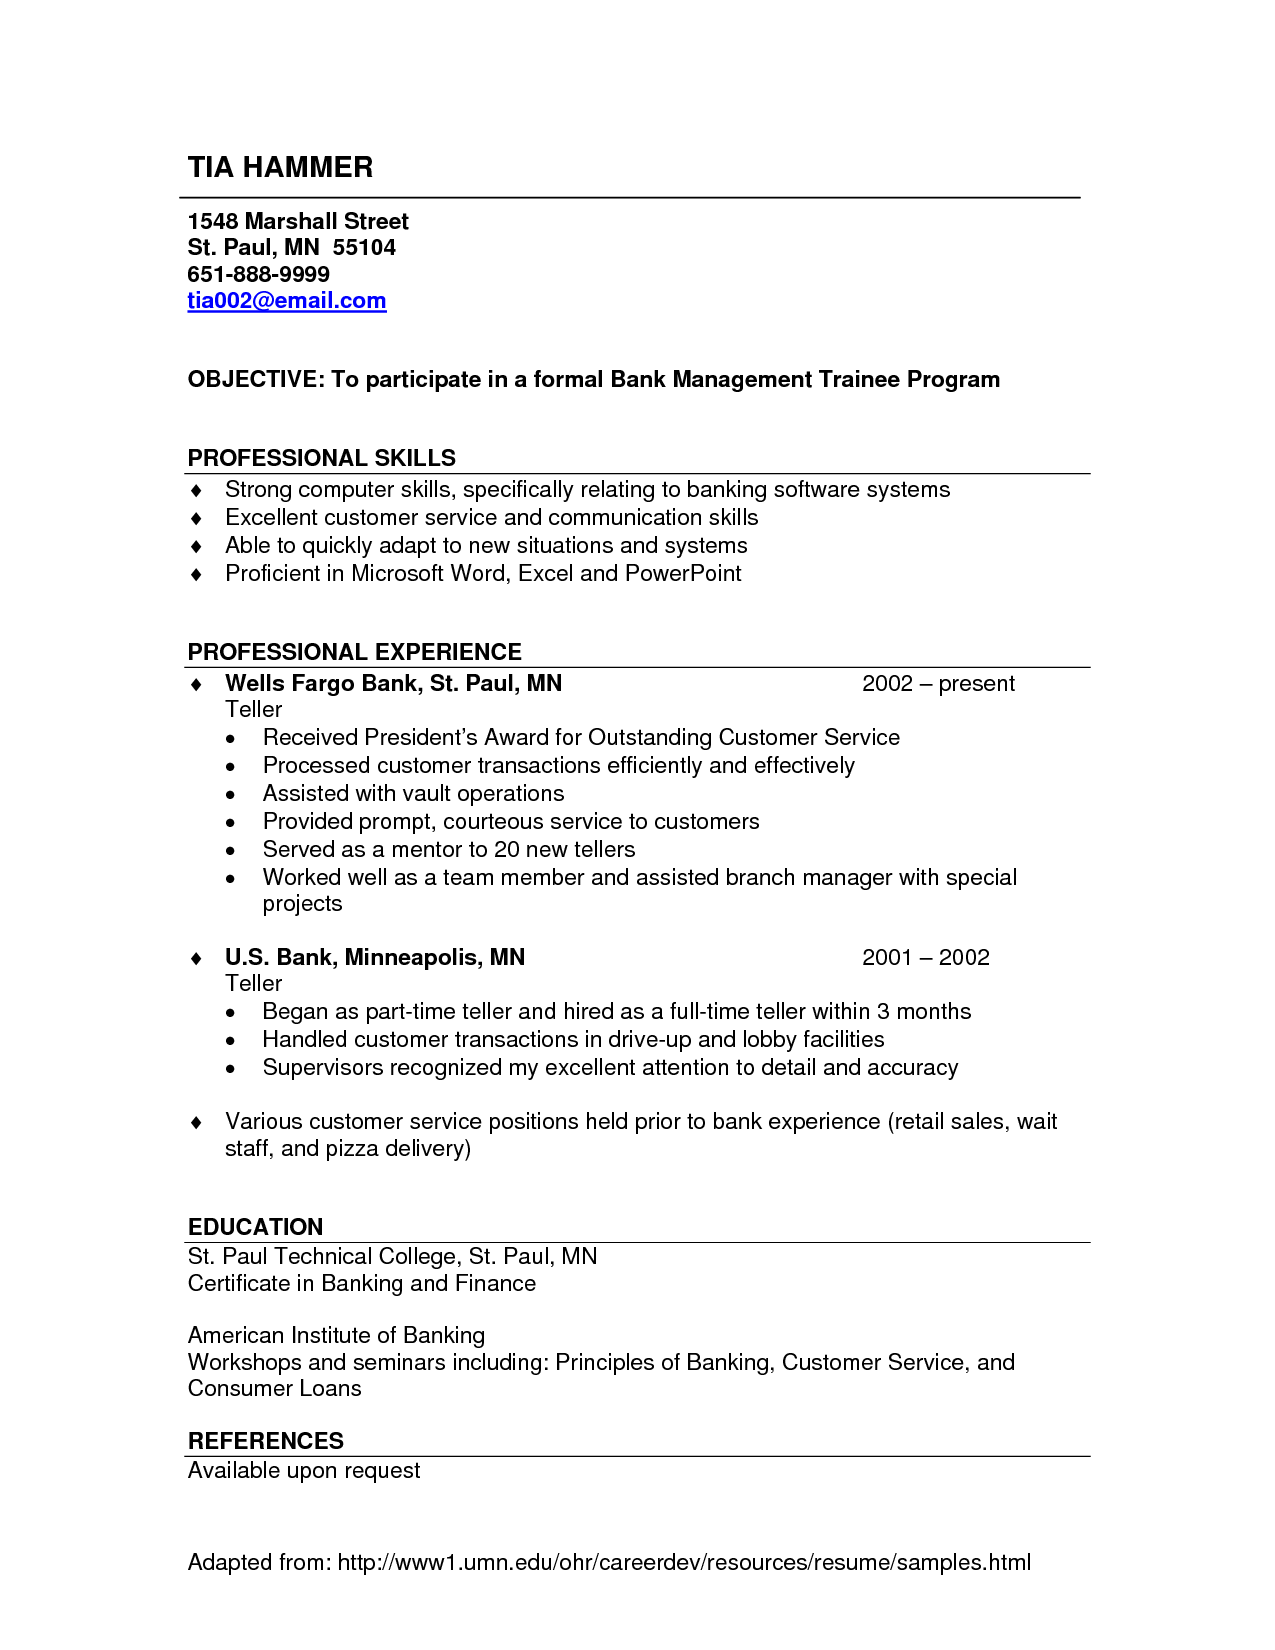 Head Teller Resume Sample Bank Teller Resume With No Experience  Httpwww